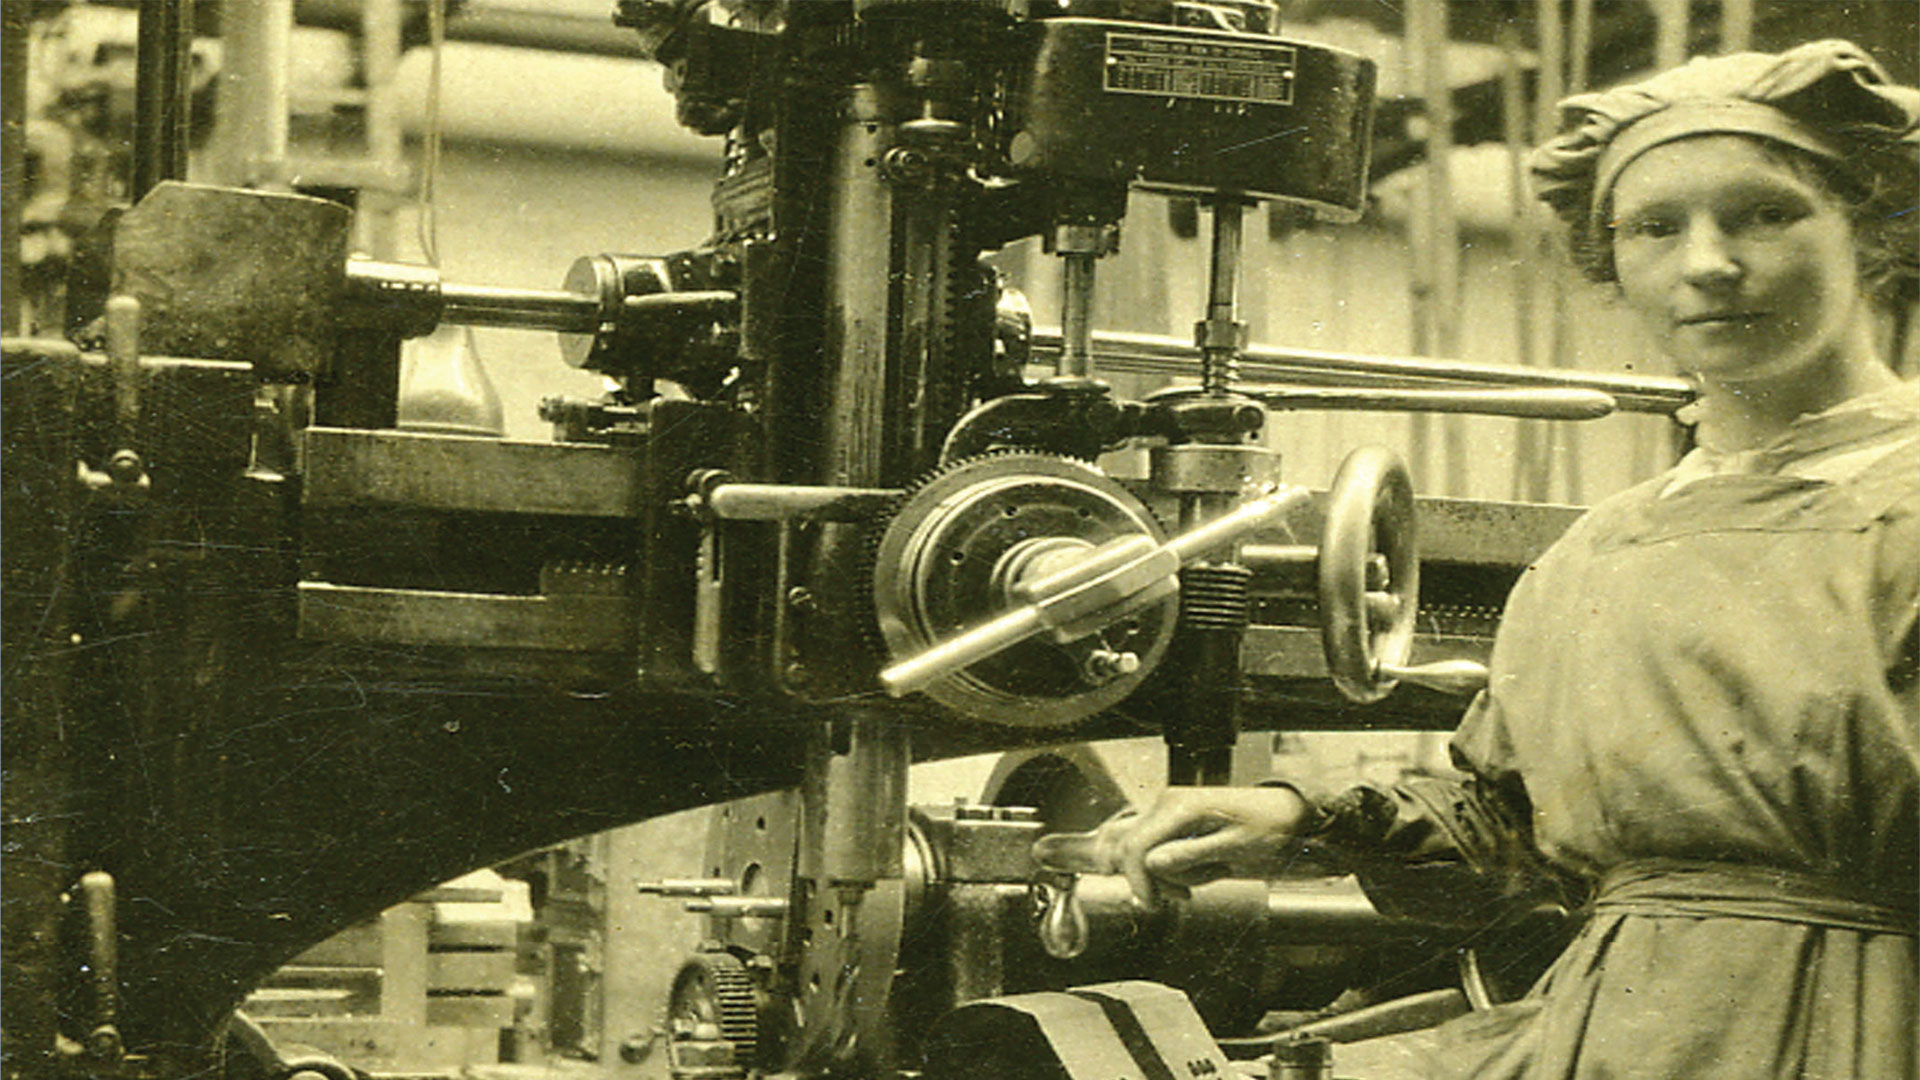 Woman engineer drilling an aero engine crankshaft at the Tongland Works in Galloway